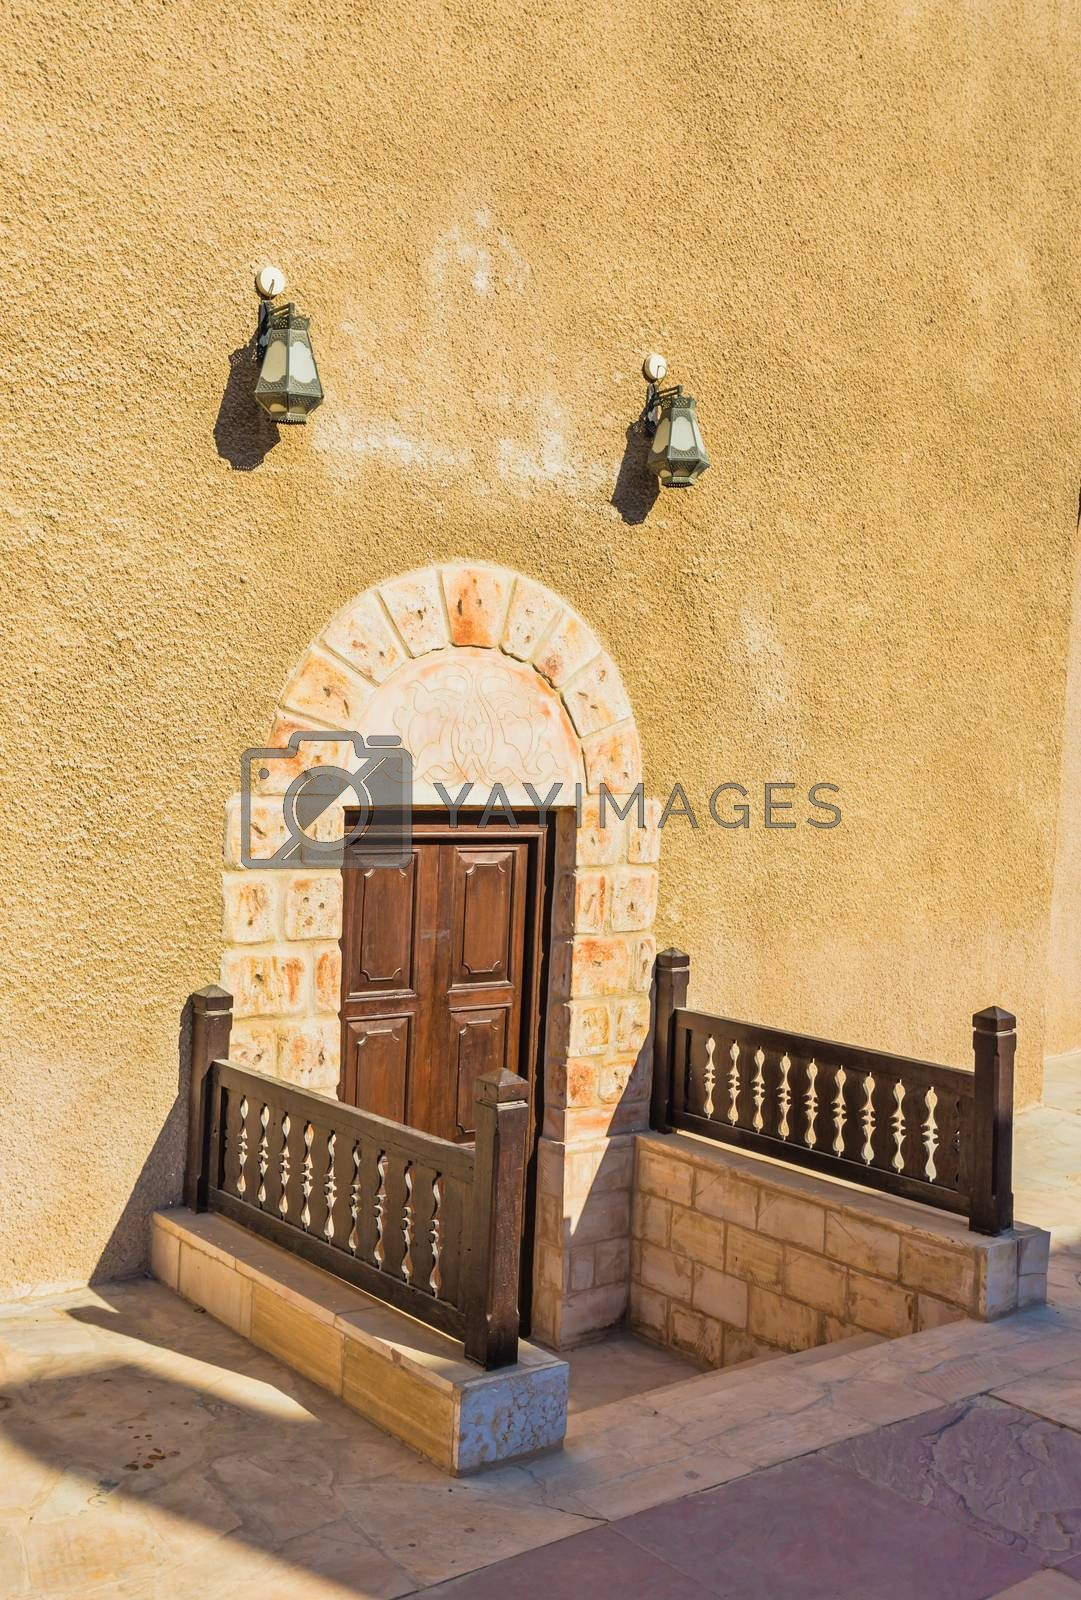 Royalty free image of old lock on a wooden door by oleg_zhukov